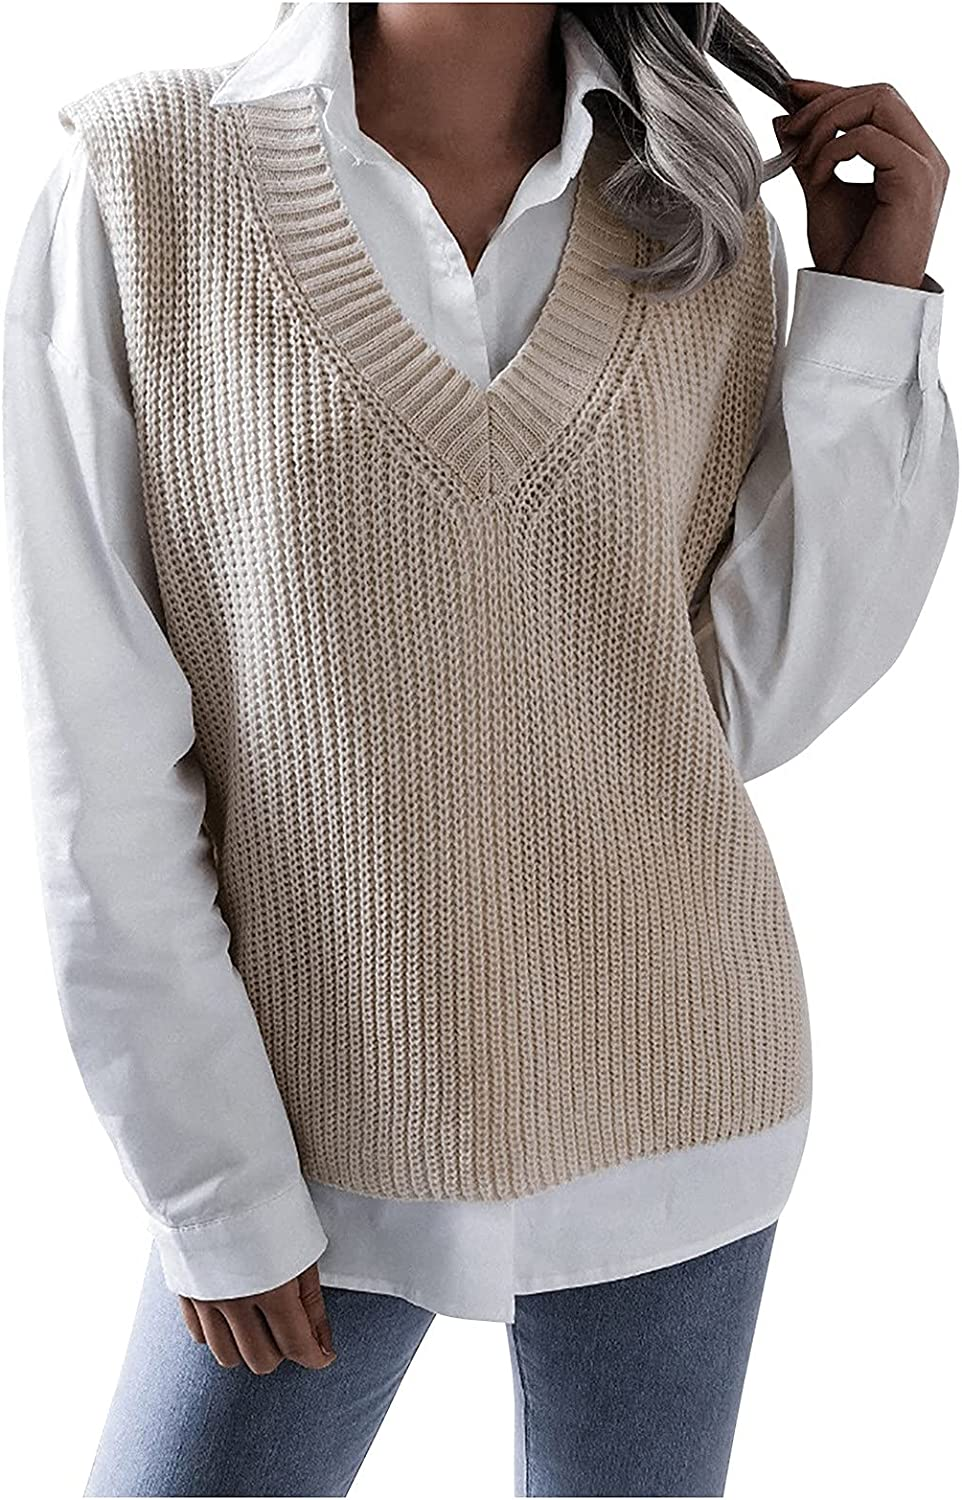 Sweater Vest Women College Style Solid Color Fashion Casual Loose Knit Hollow V-Neck Sweaters Top